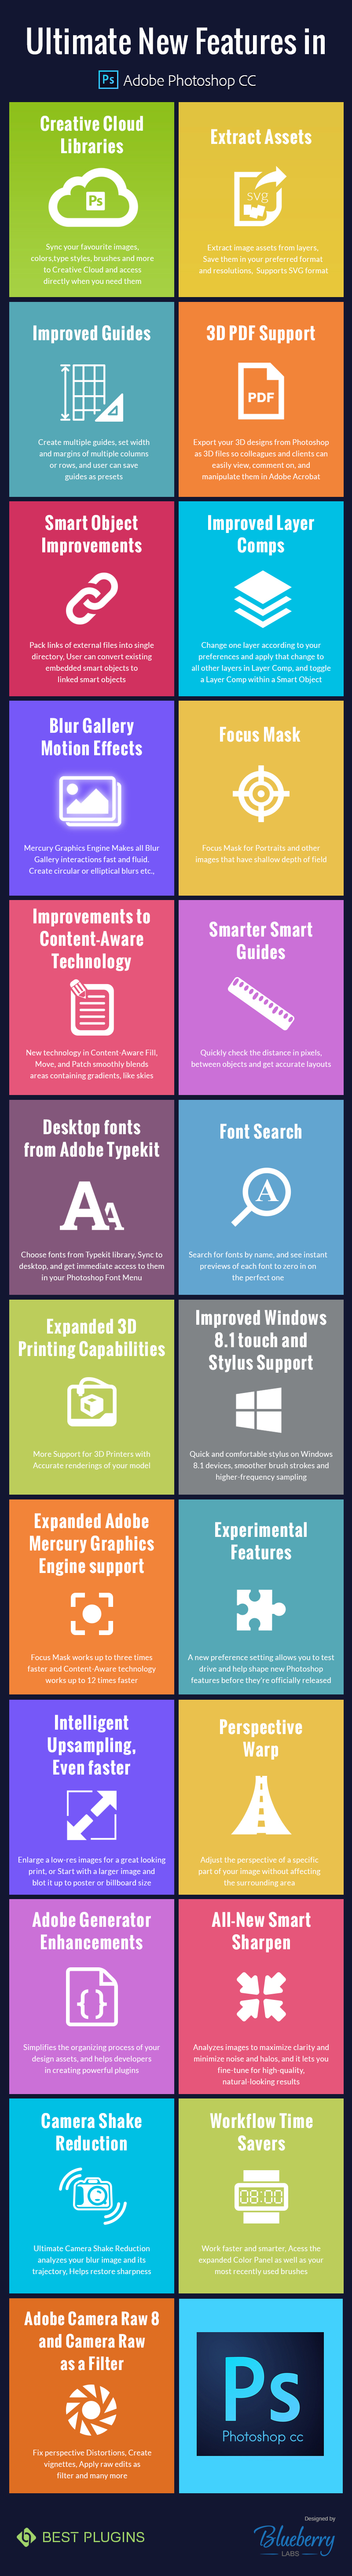 New Photoshop Features Infographic